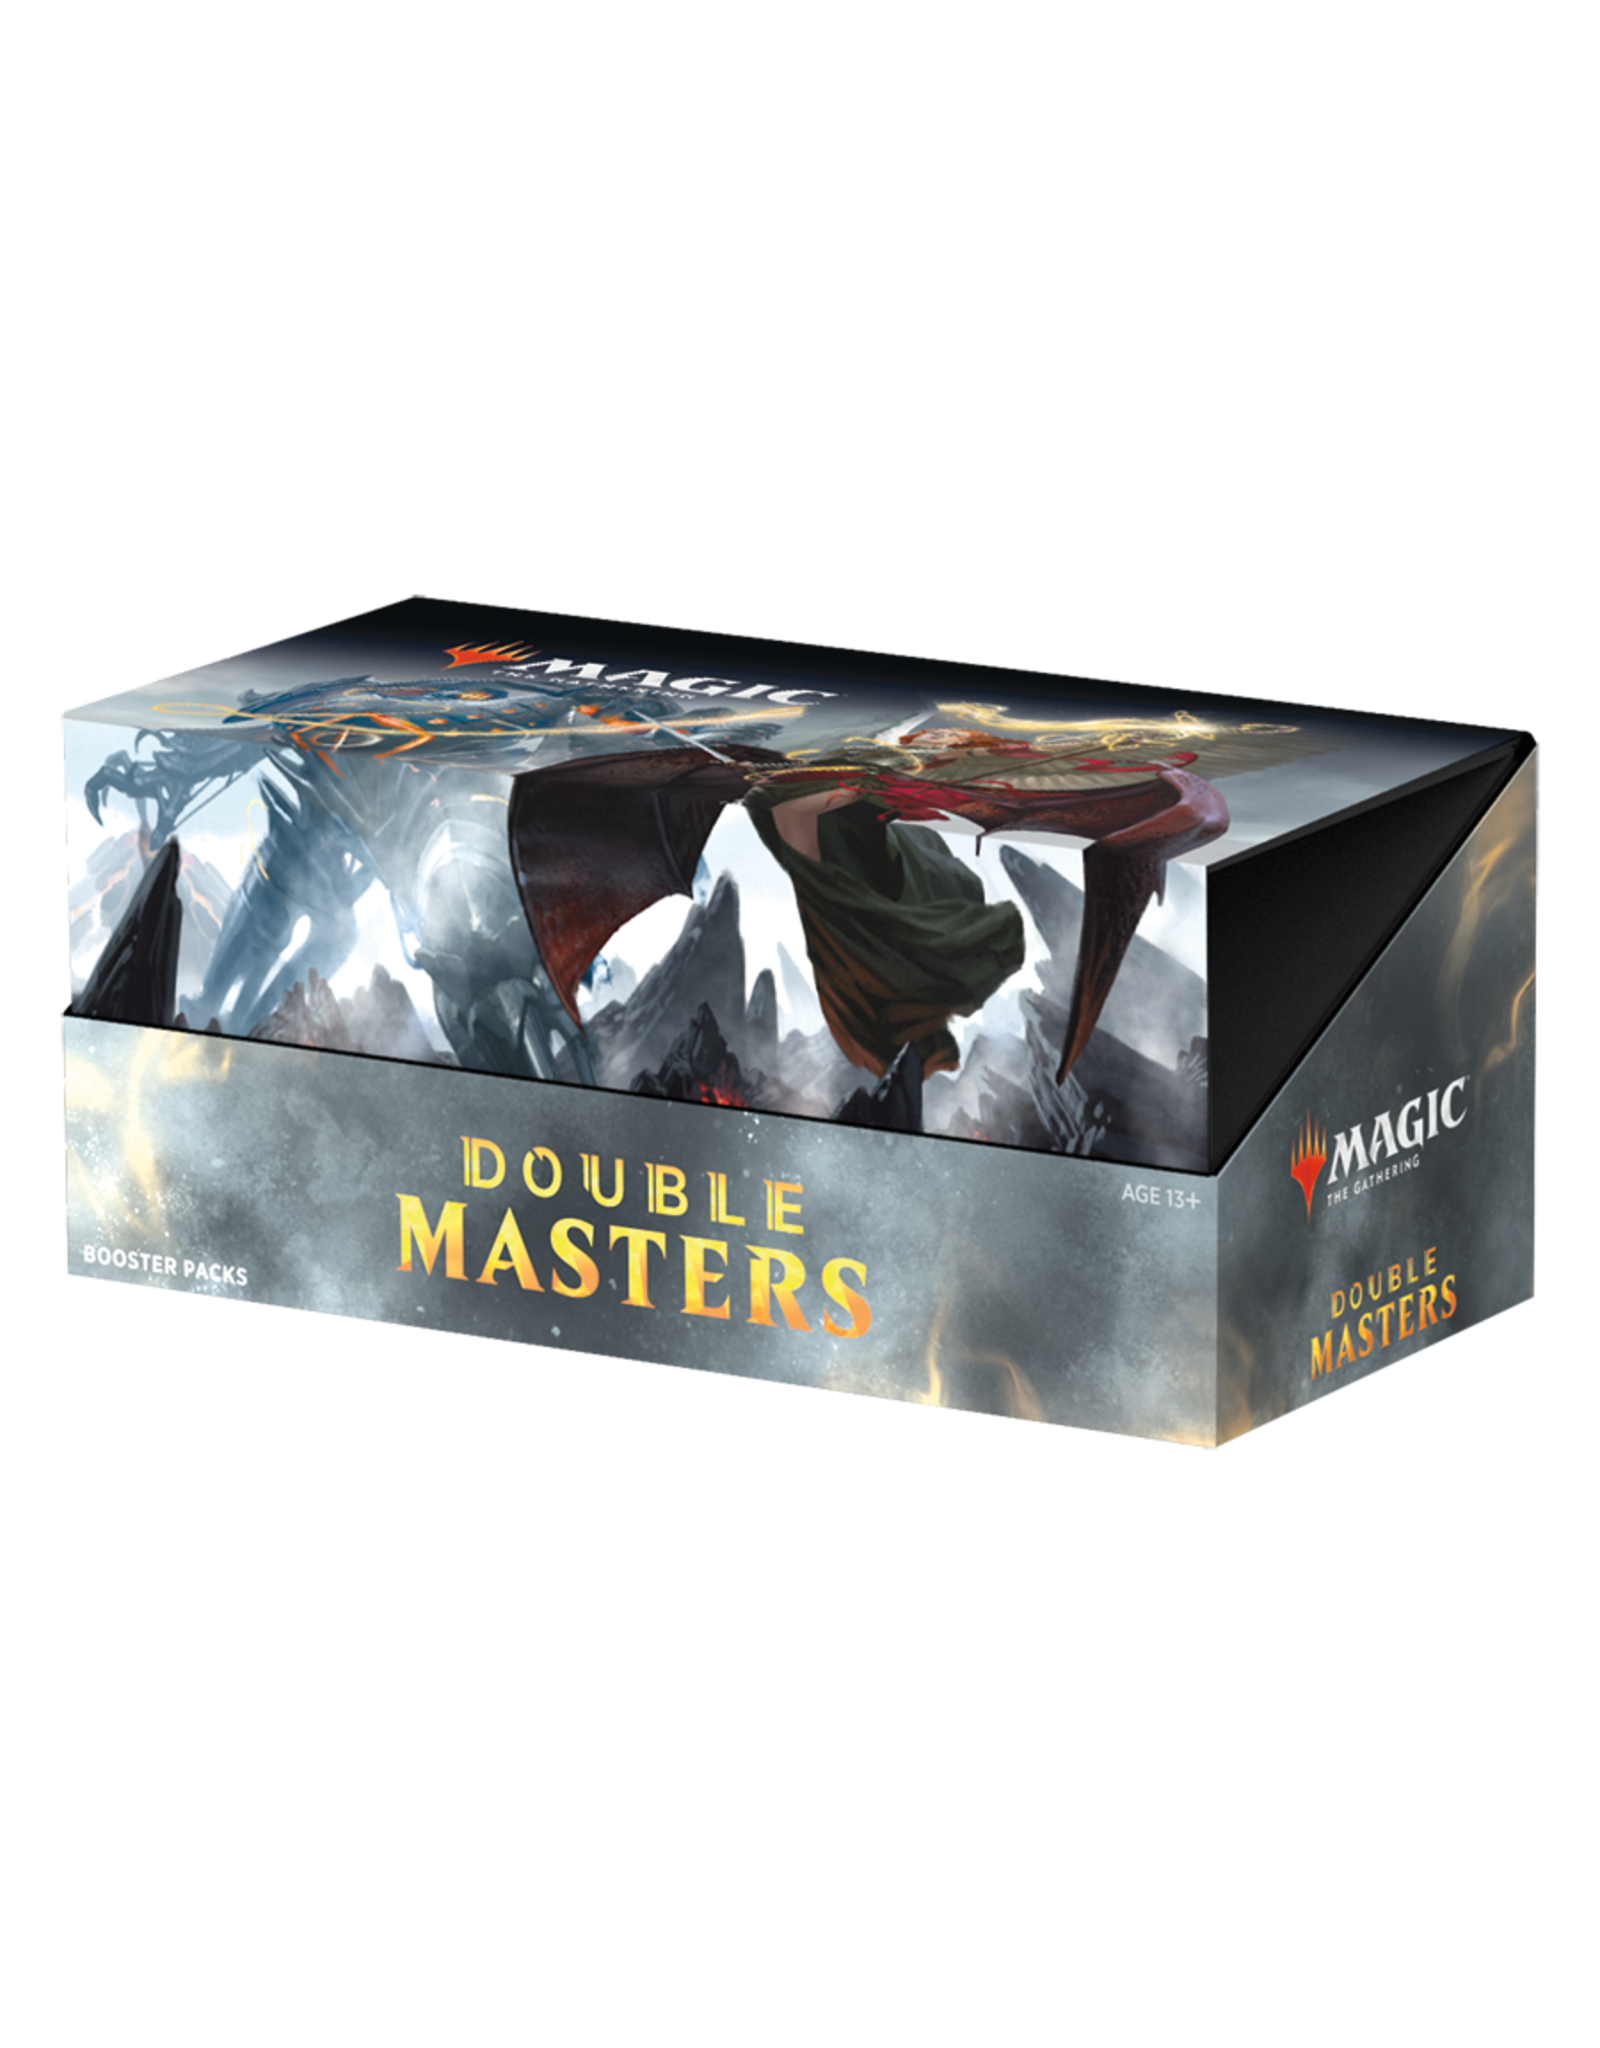 Magic: The Gathering Magic: The Gathering - Double Masters - Draft Booster Box